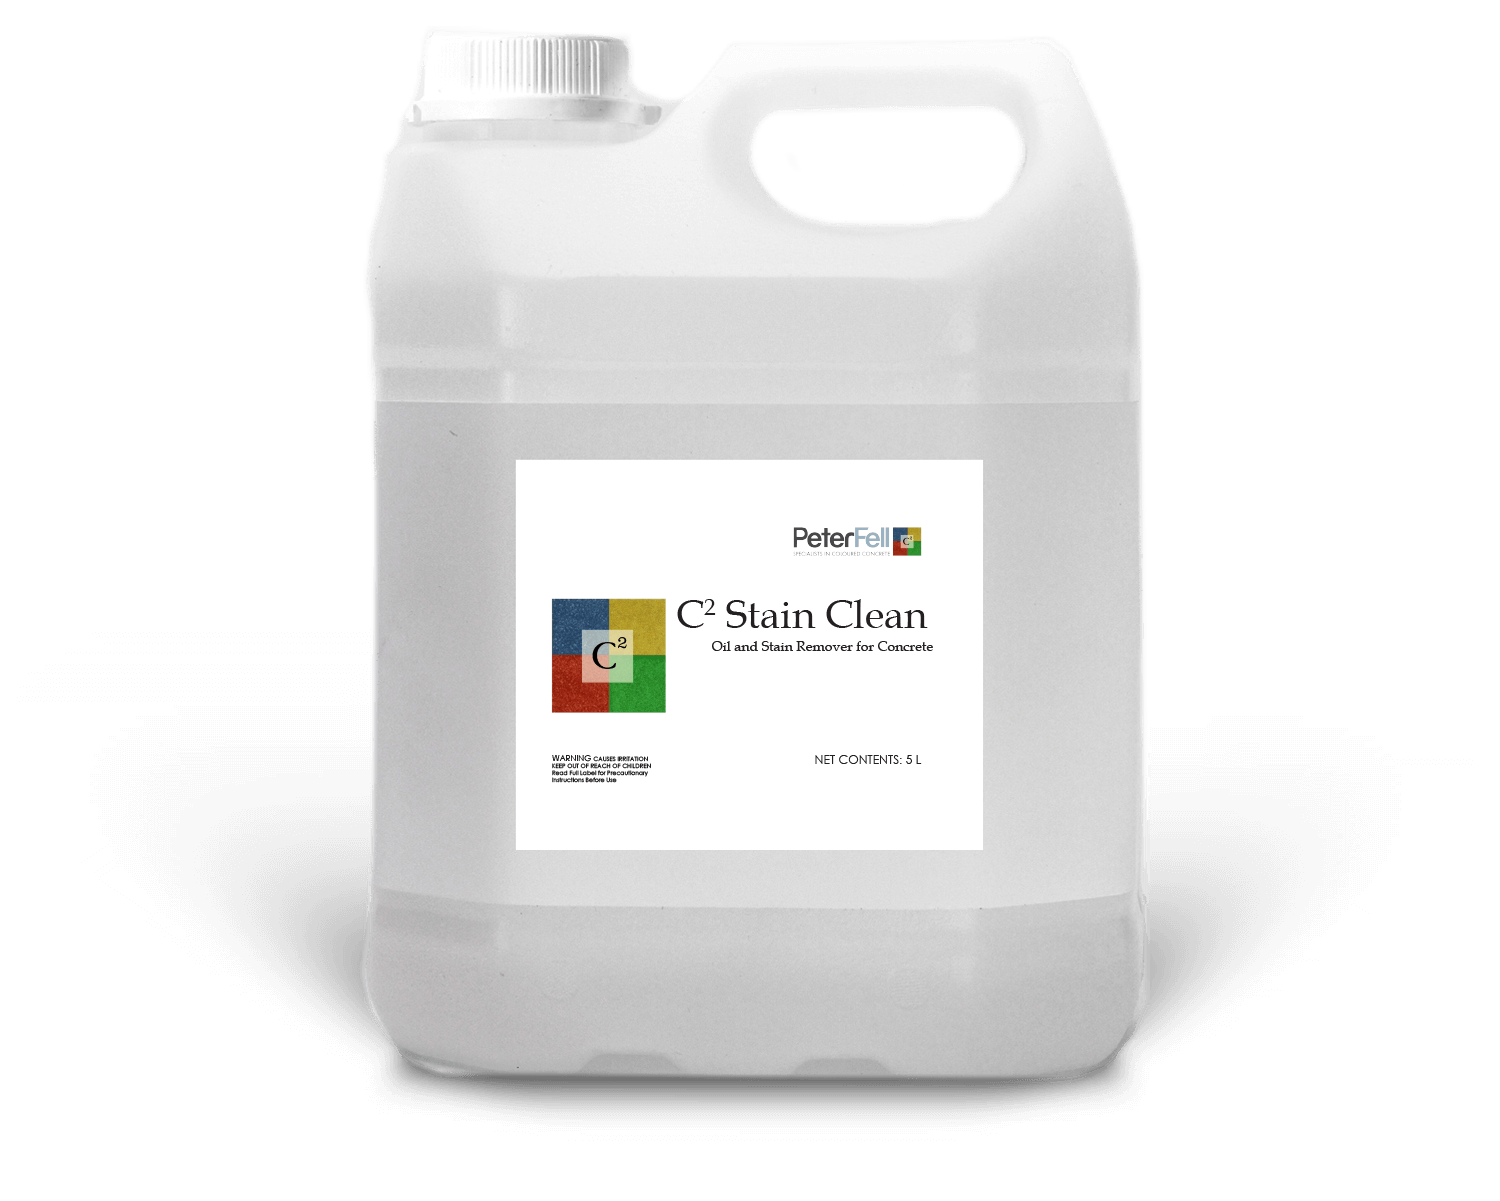 C2 Stain Clean for cleaning Concrete floors